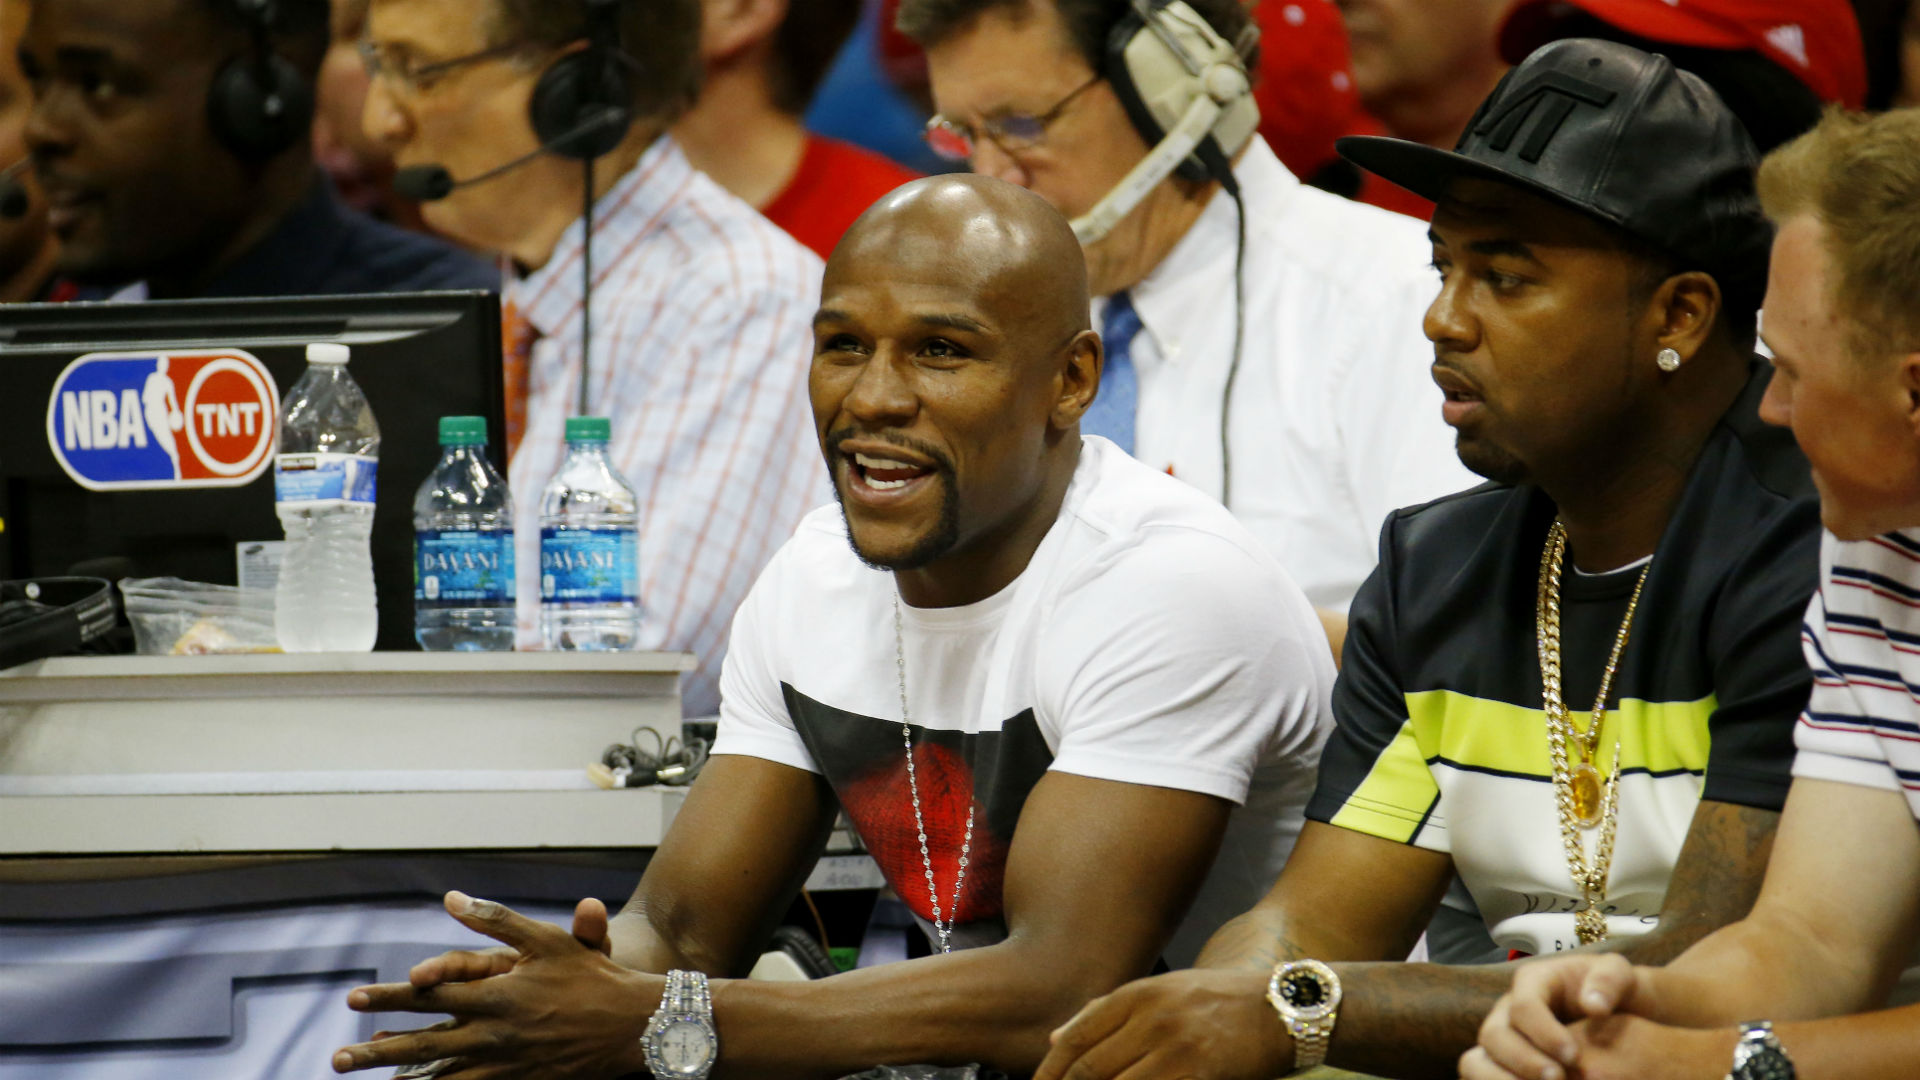 Floyd Mayweather cashes in on Warriors' blowout